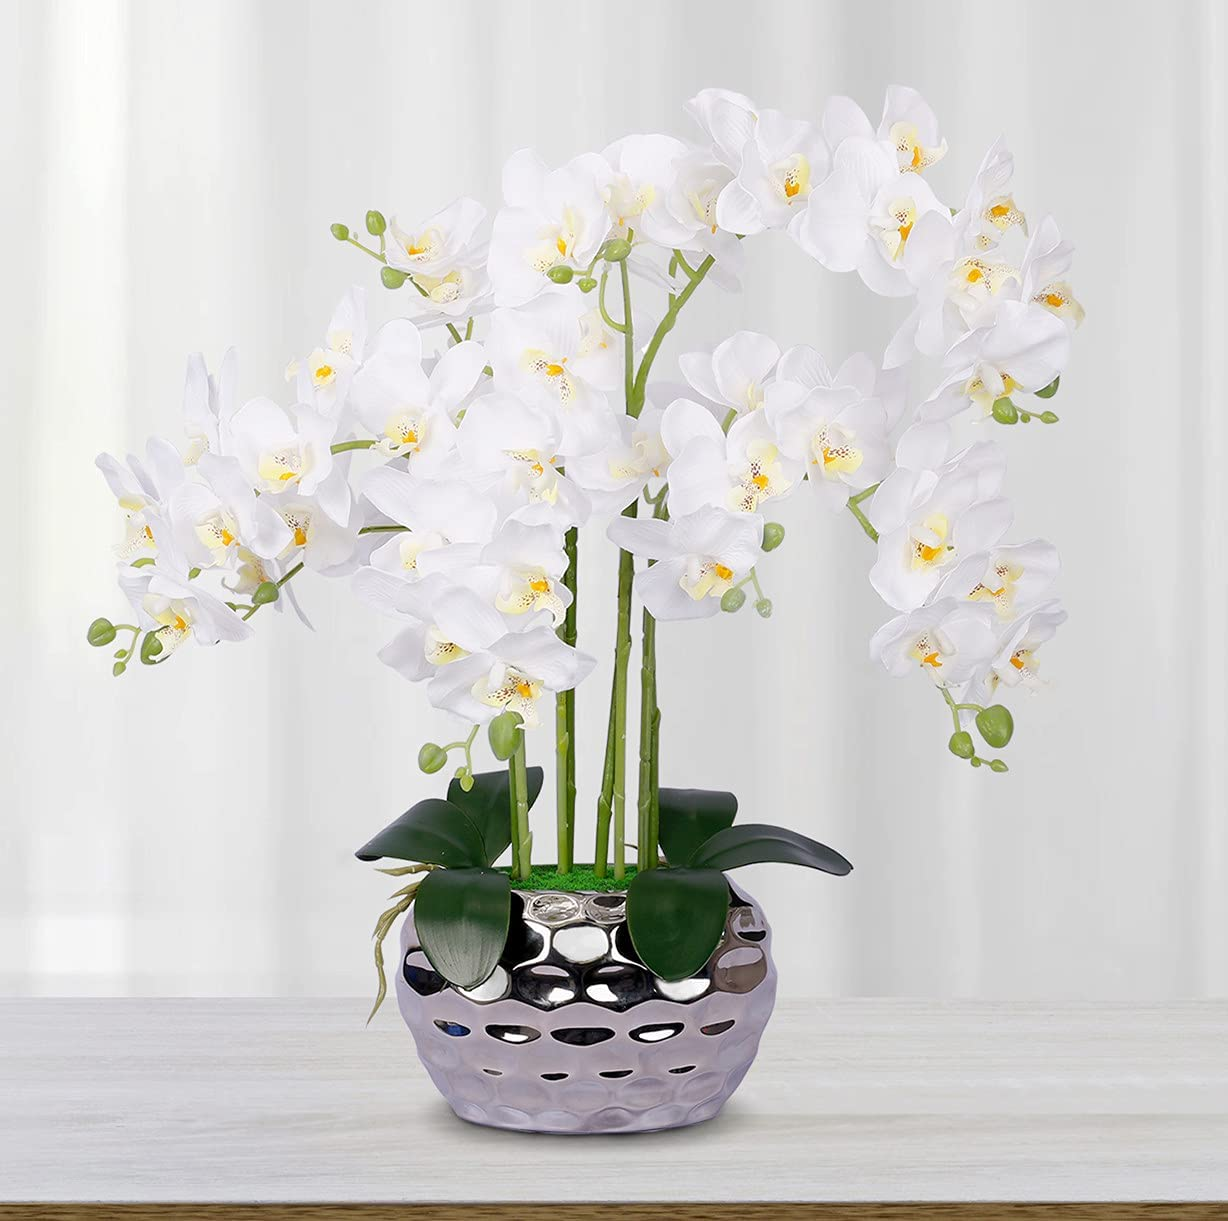 Artificial Orchid White Orchid Artificial Flowers Orchids Fake Faux Orchid Plant Phalaenopsis Silk Orchid Flower for Home Decor Kitchen Decoration Table centerpieces White with Silver vase